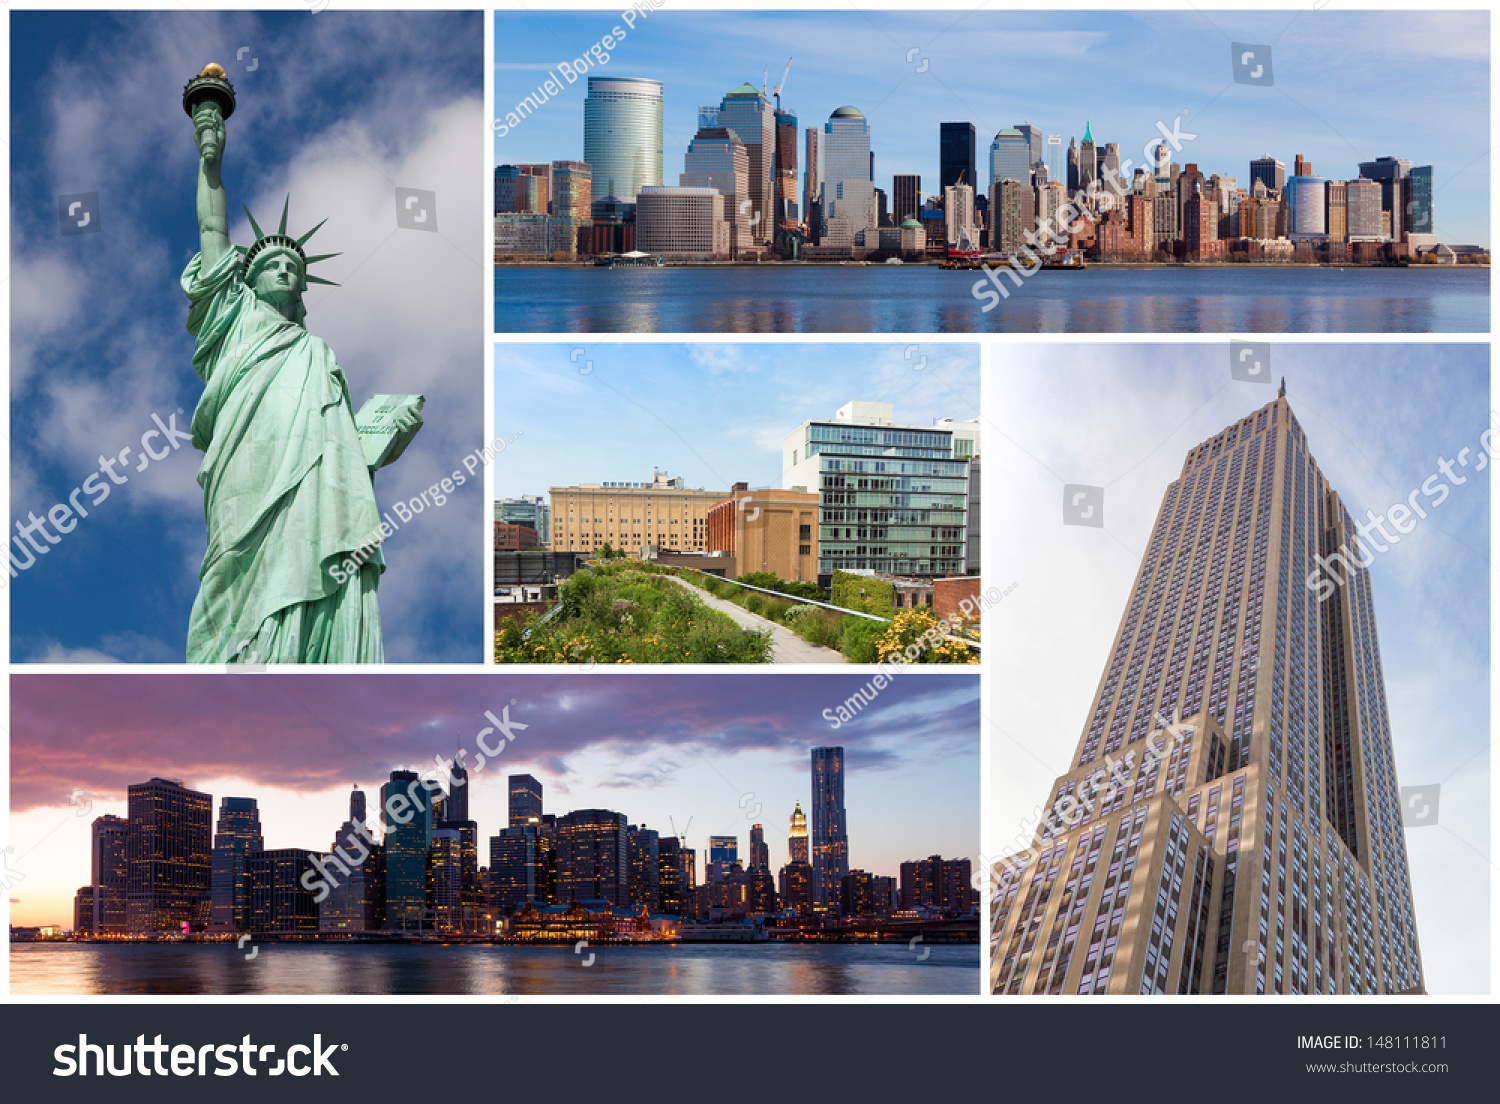 New york city famous landmarks picture stock photo for Iconic new york landmarks